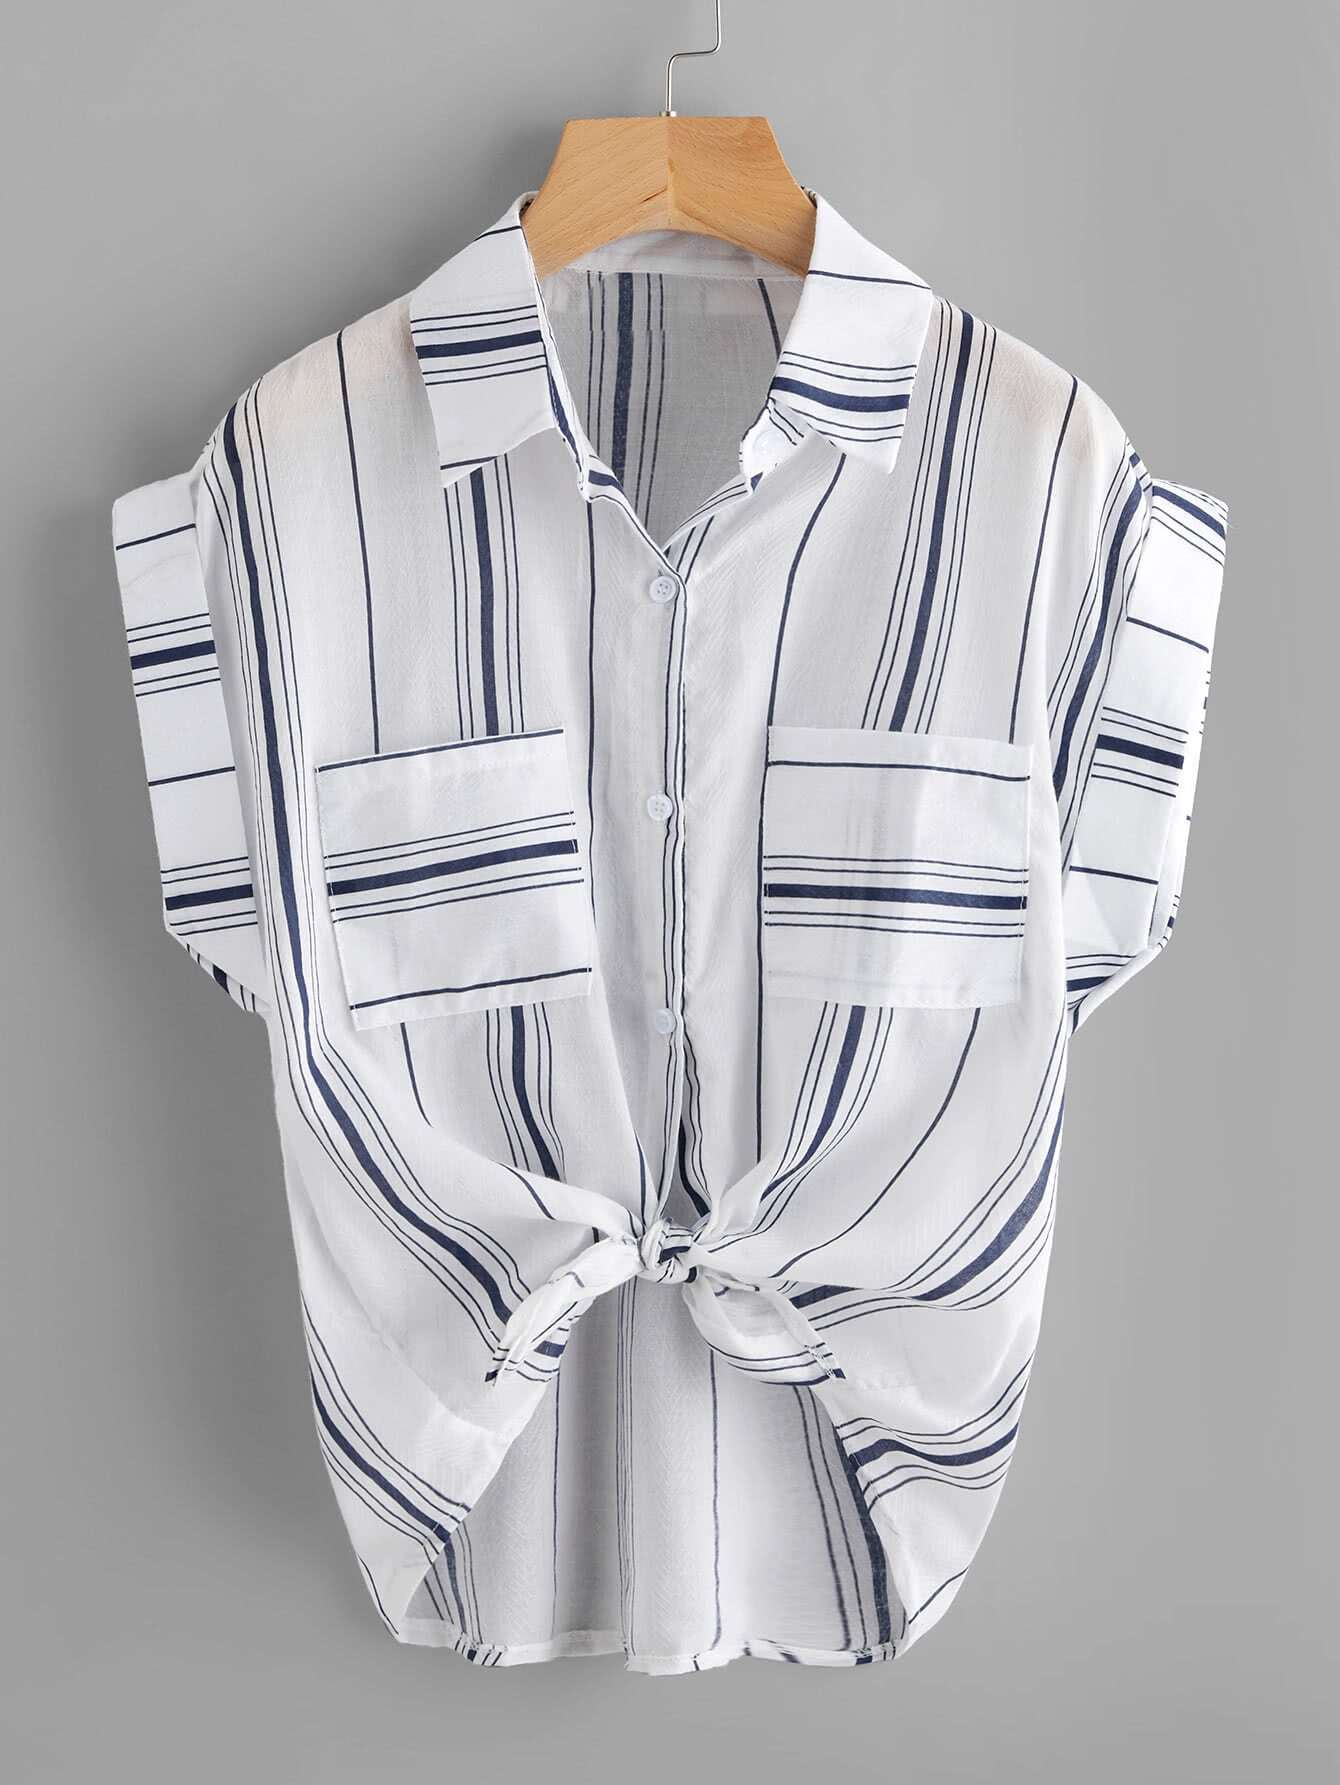 Knotted Hem Cuffed Striped Shirt striped knotted front cuffed shirt with chest pocket